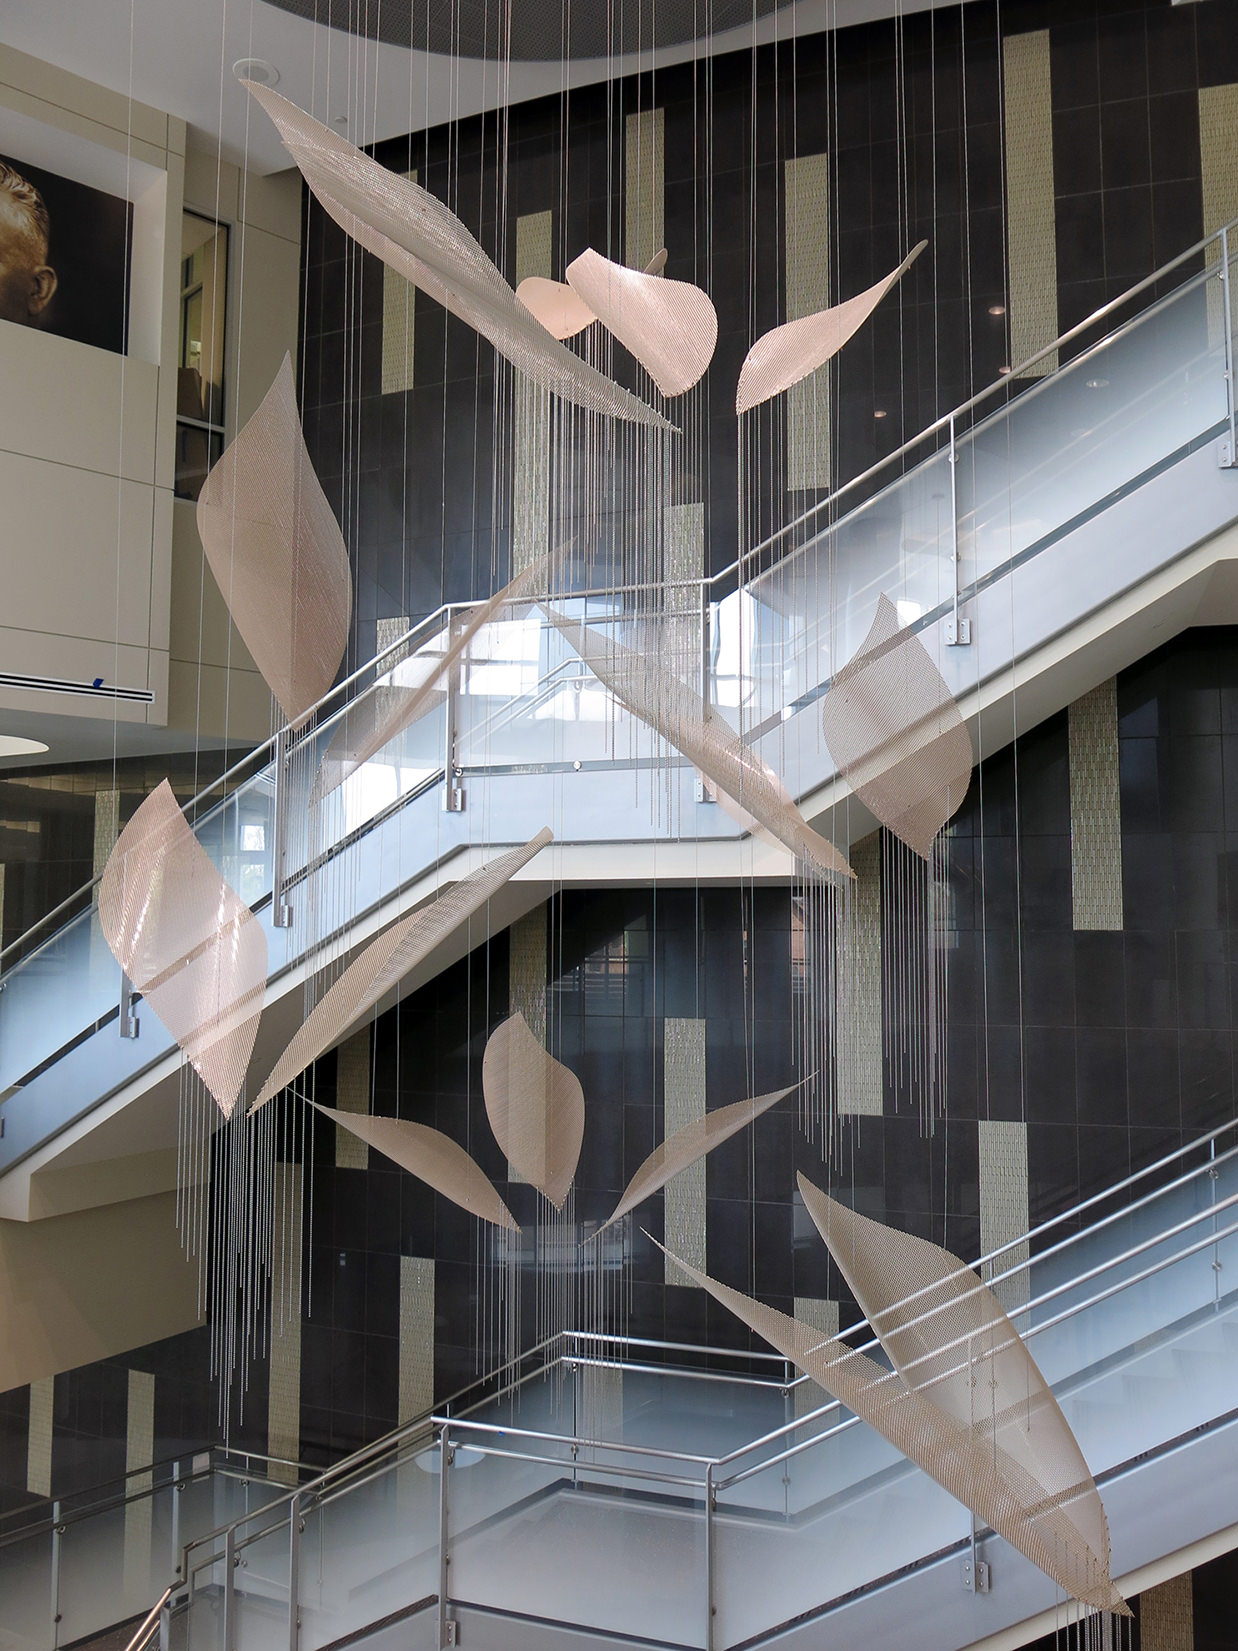 Contrails suspended sculpture by Talley Fisher in the atrium of Ambulatory Care Center, Joint Base Andrews.